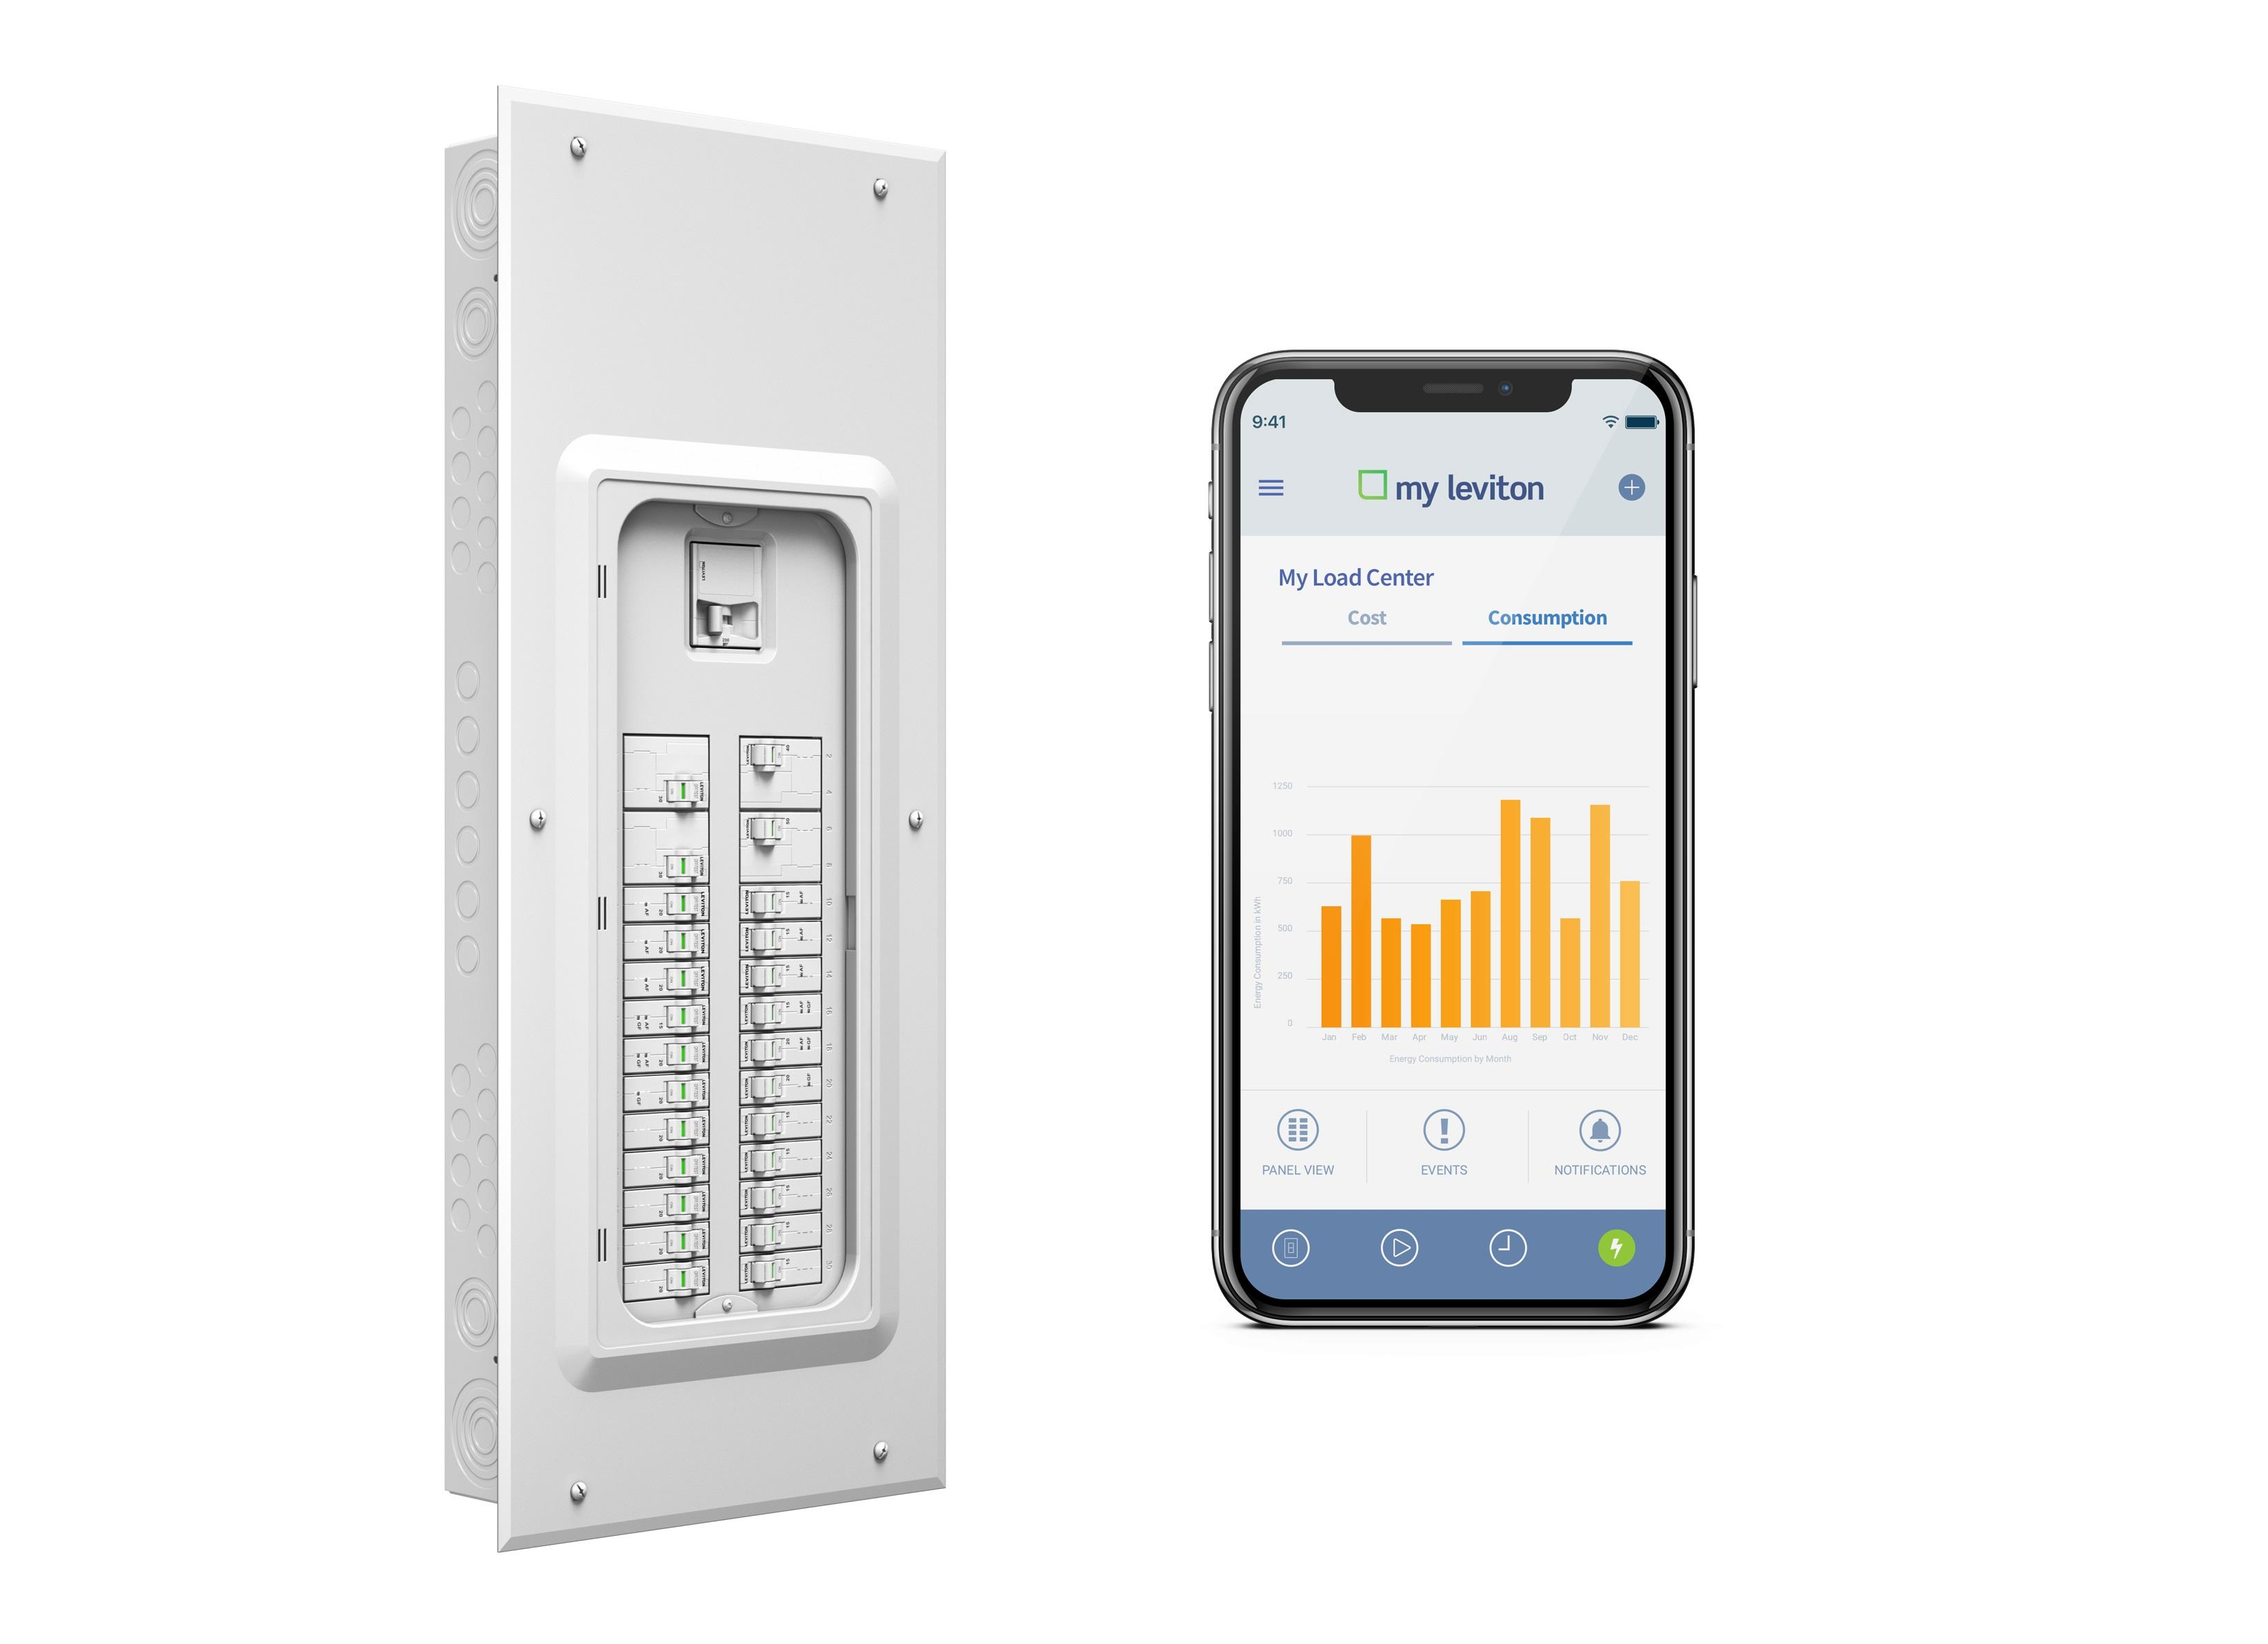 leviton-load-center-and-app